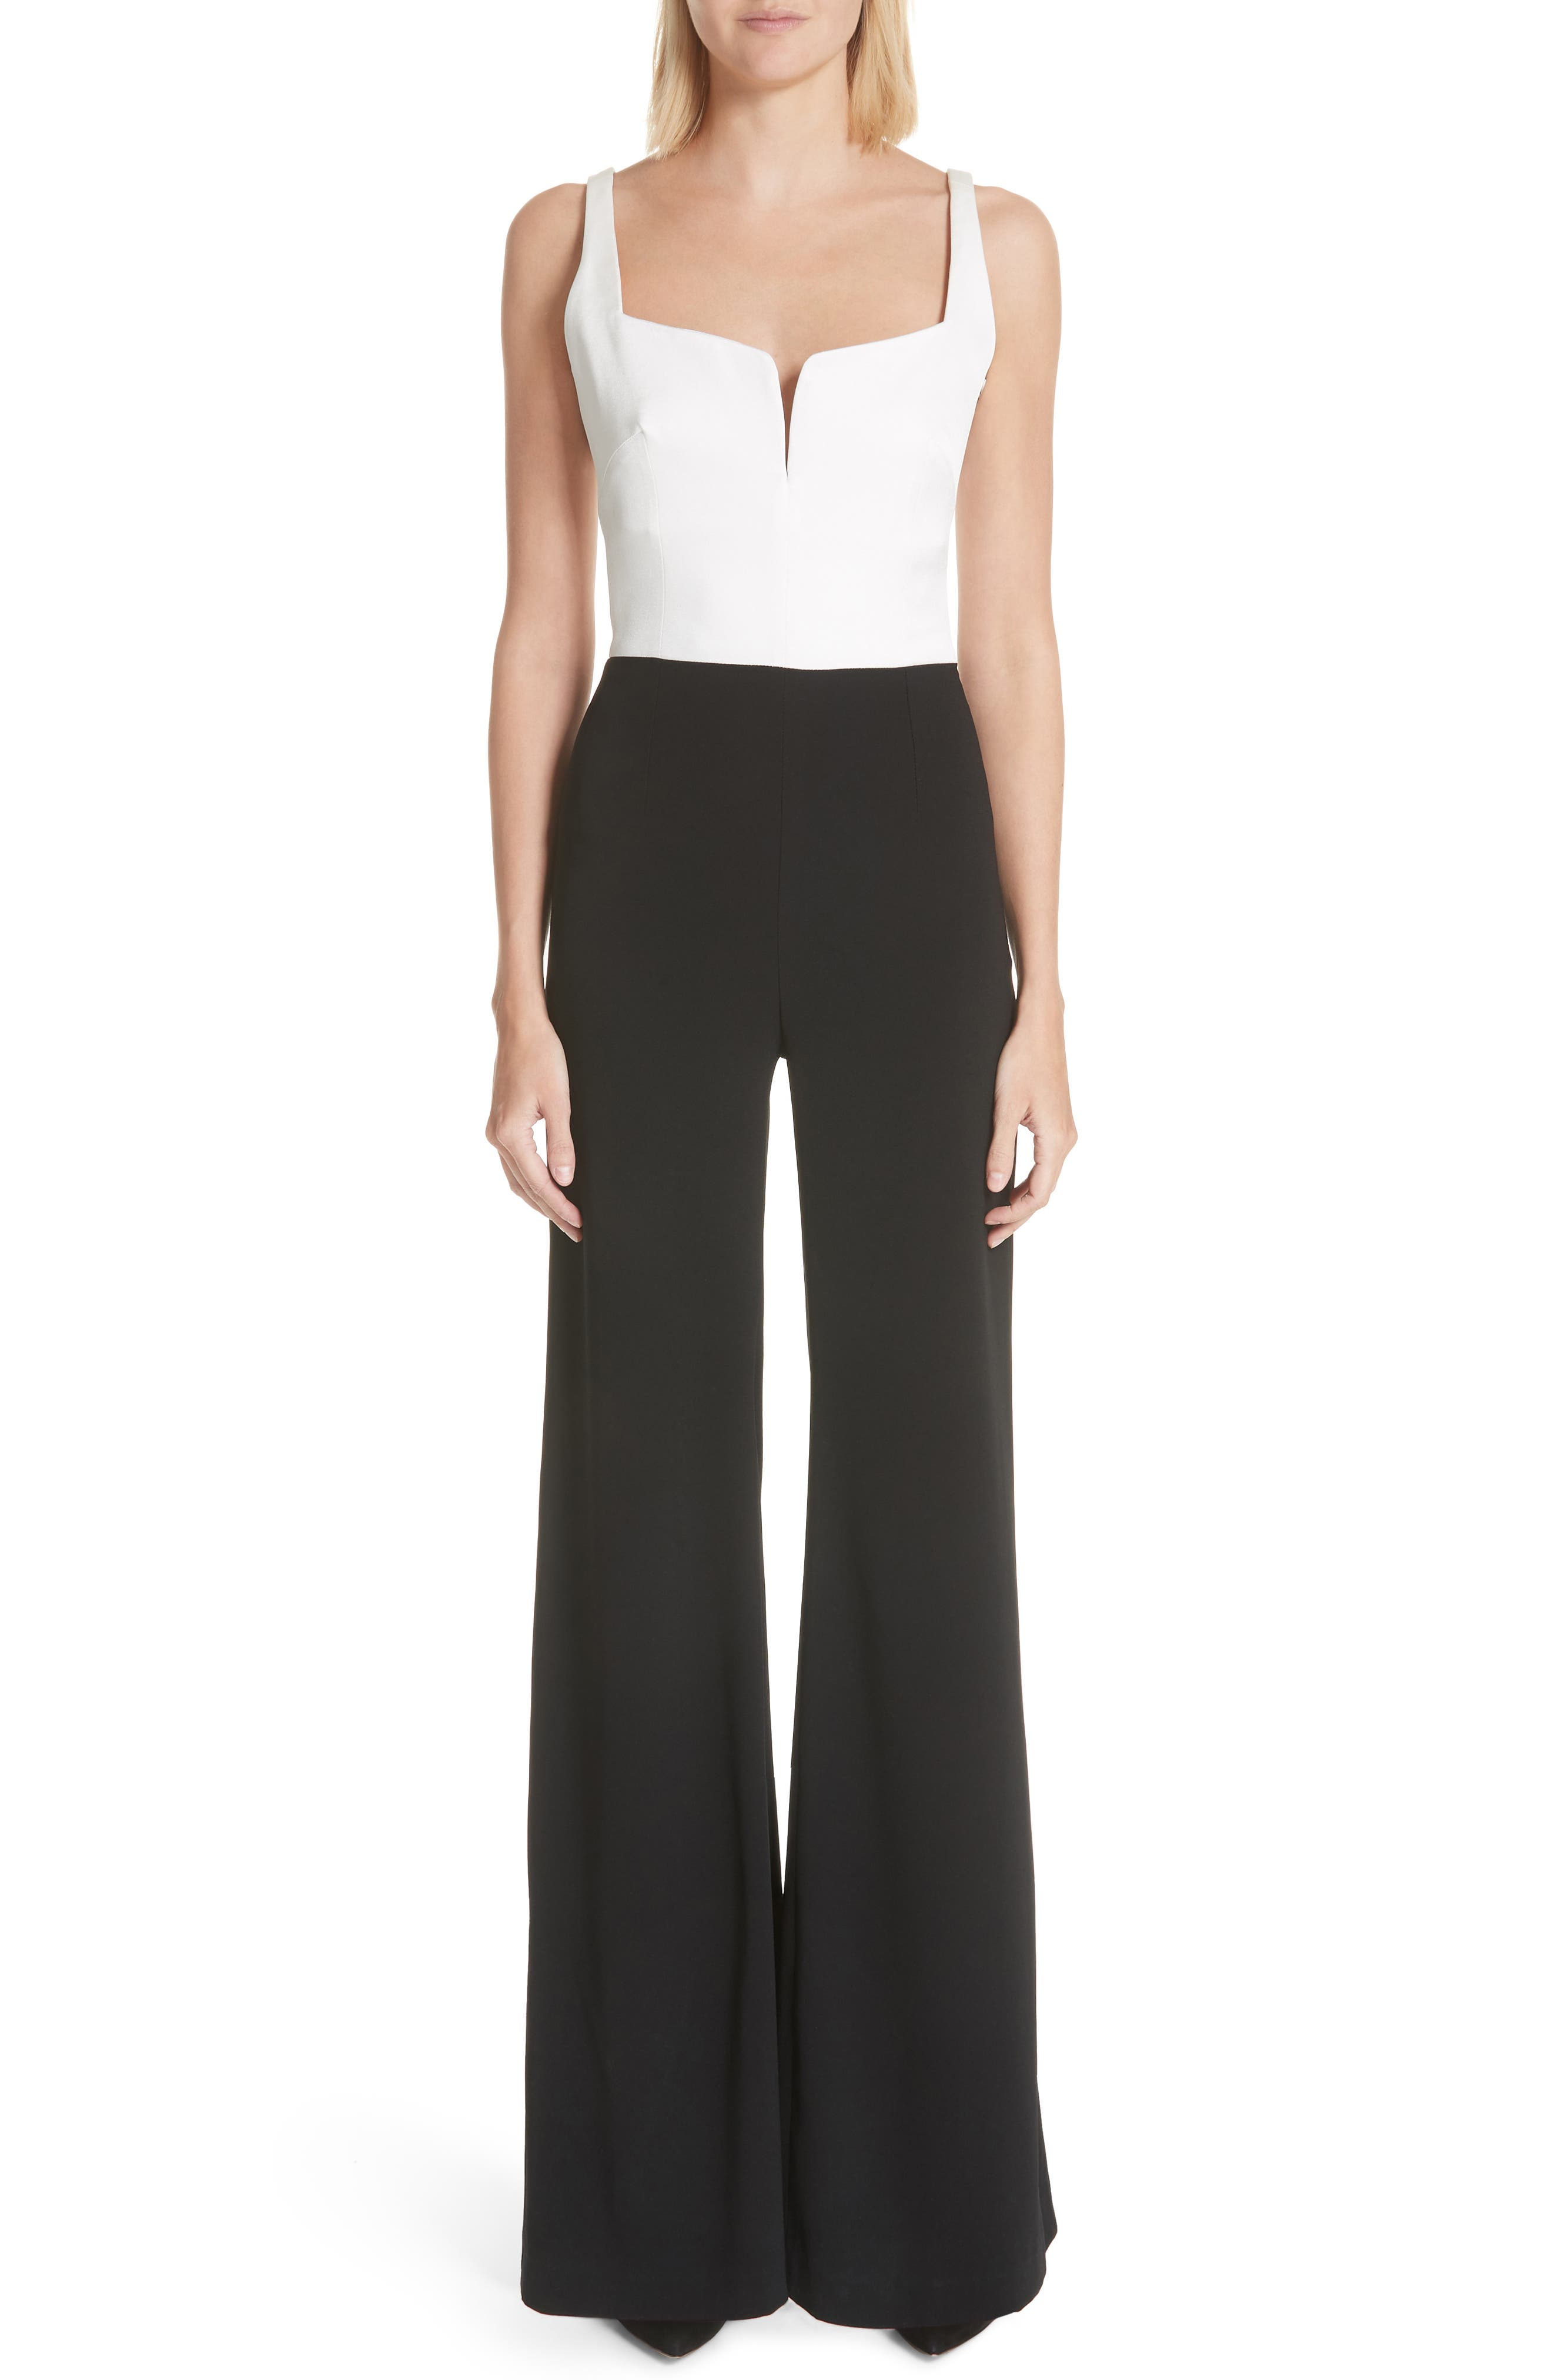 GALVAN, Eclipse Satin & Matte Crepe Jumpsuit, Main thumbnail 1, color, WHITE/ BLACK